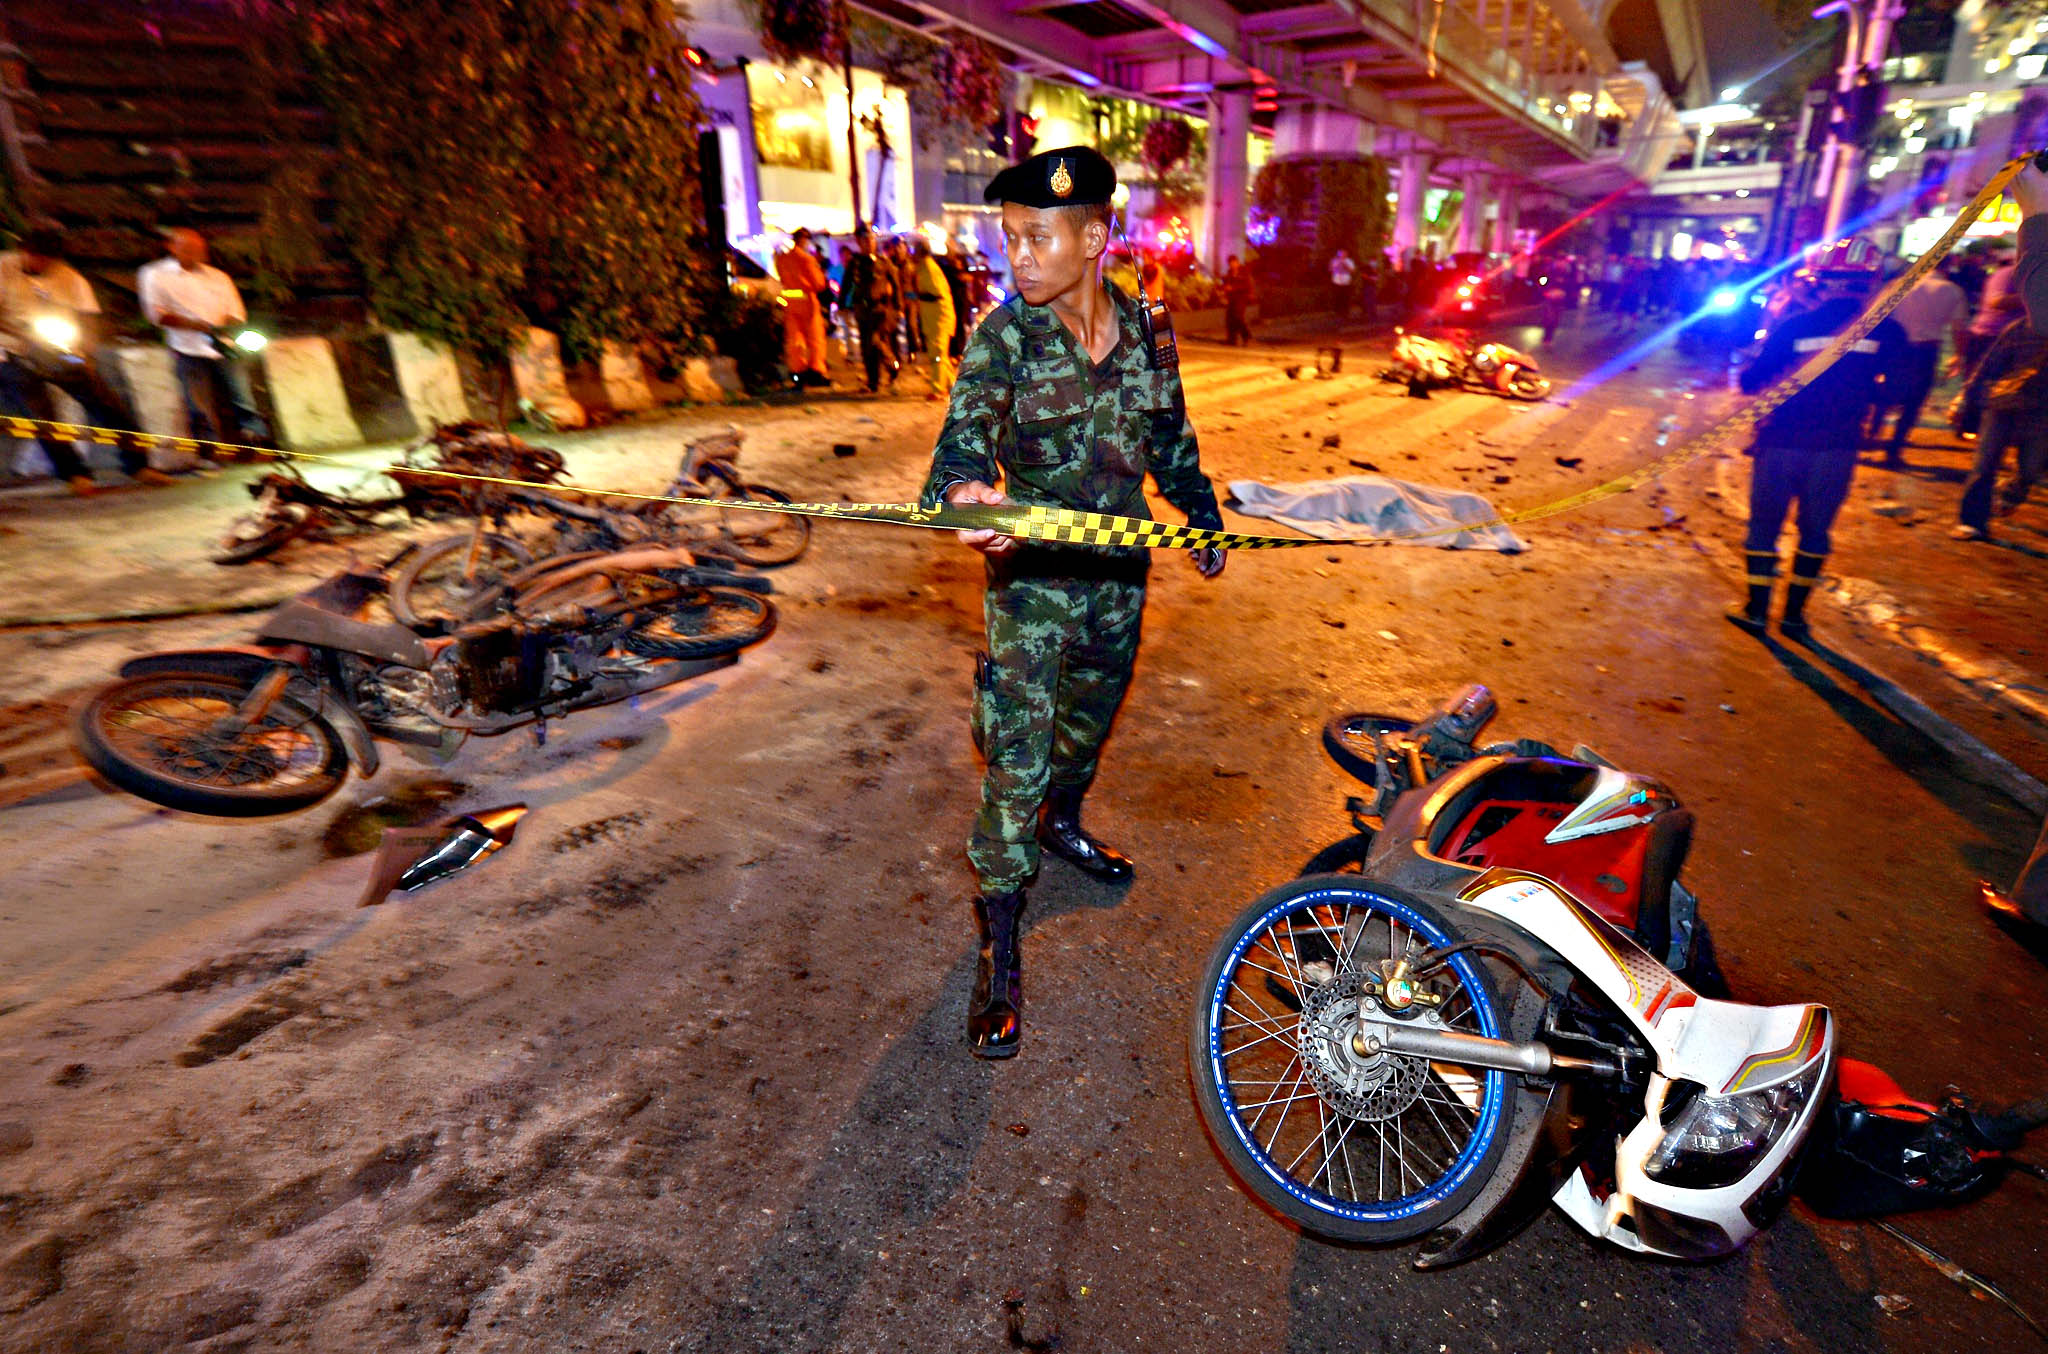 A Thai soldier ropes off the scene after a bomb exploded outside a religious shrine in central Bangkok late on August 17, 2015 killing at least 10 people and wounding scores more.  Body parts were scattered across the street after the explosion outside the Erawan Shrine in the downtown Chidlom district of the Thai capital